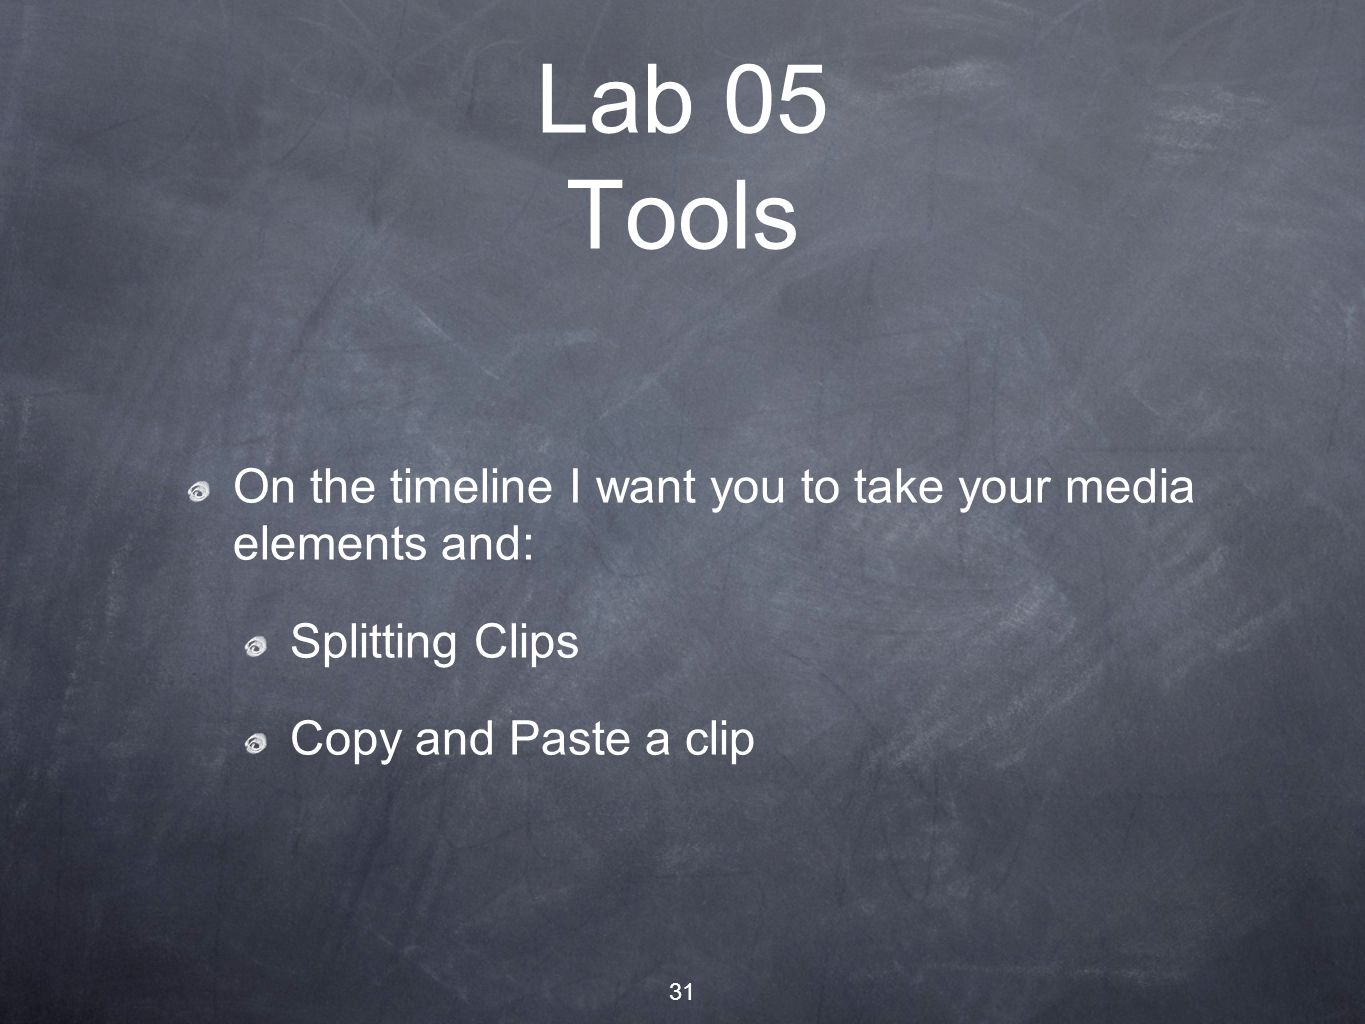 31 Lab 05 Tools On the timeline I want you to take your media elements and: Splitting Clips Copy and Paste a clip